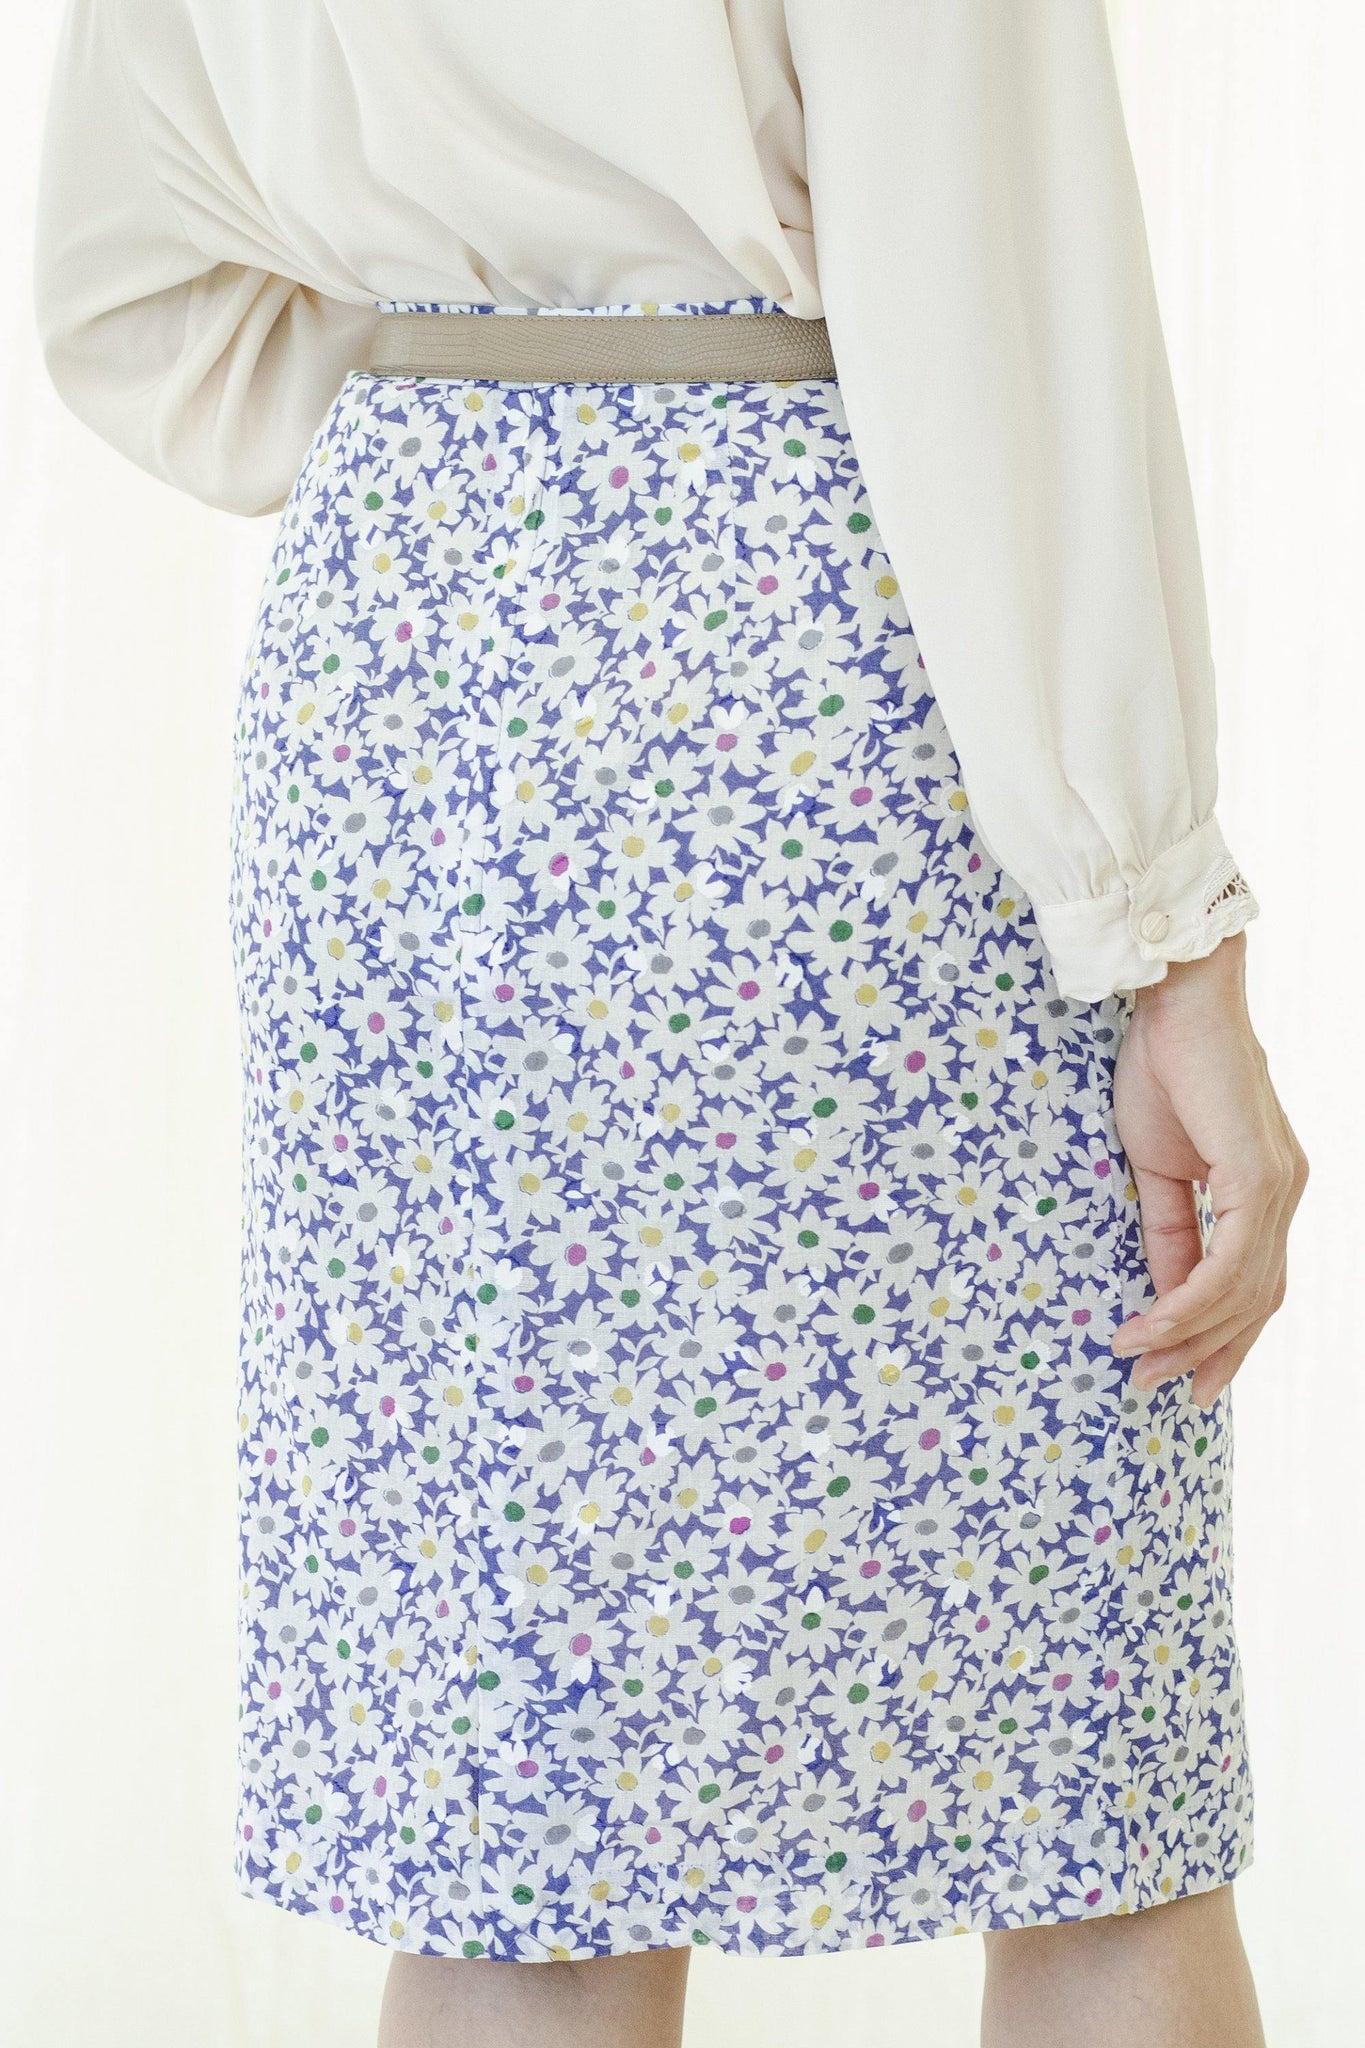 Colorful floral pattern cotton skirt - Sugar & Cream Vintage